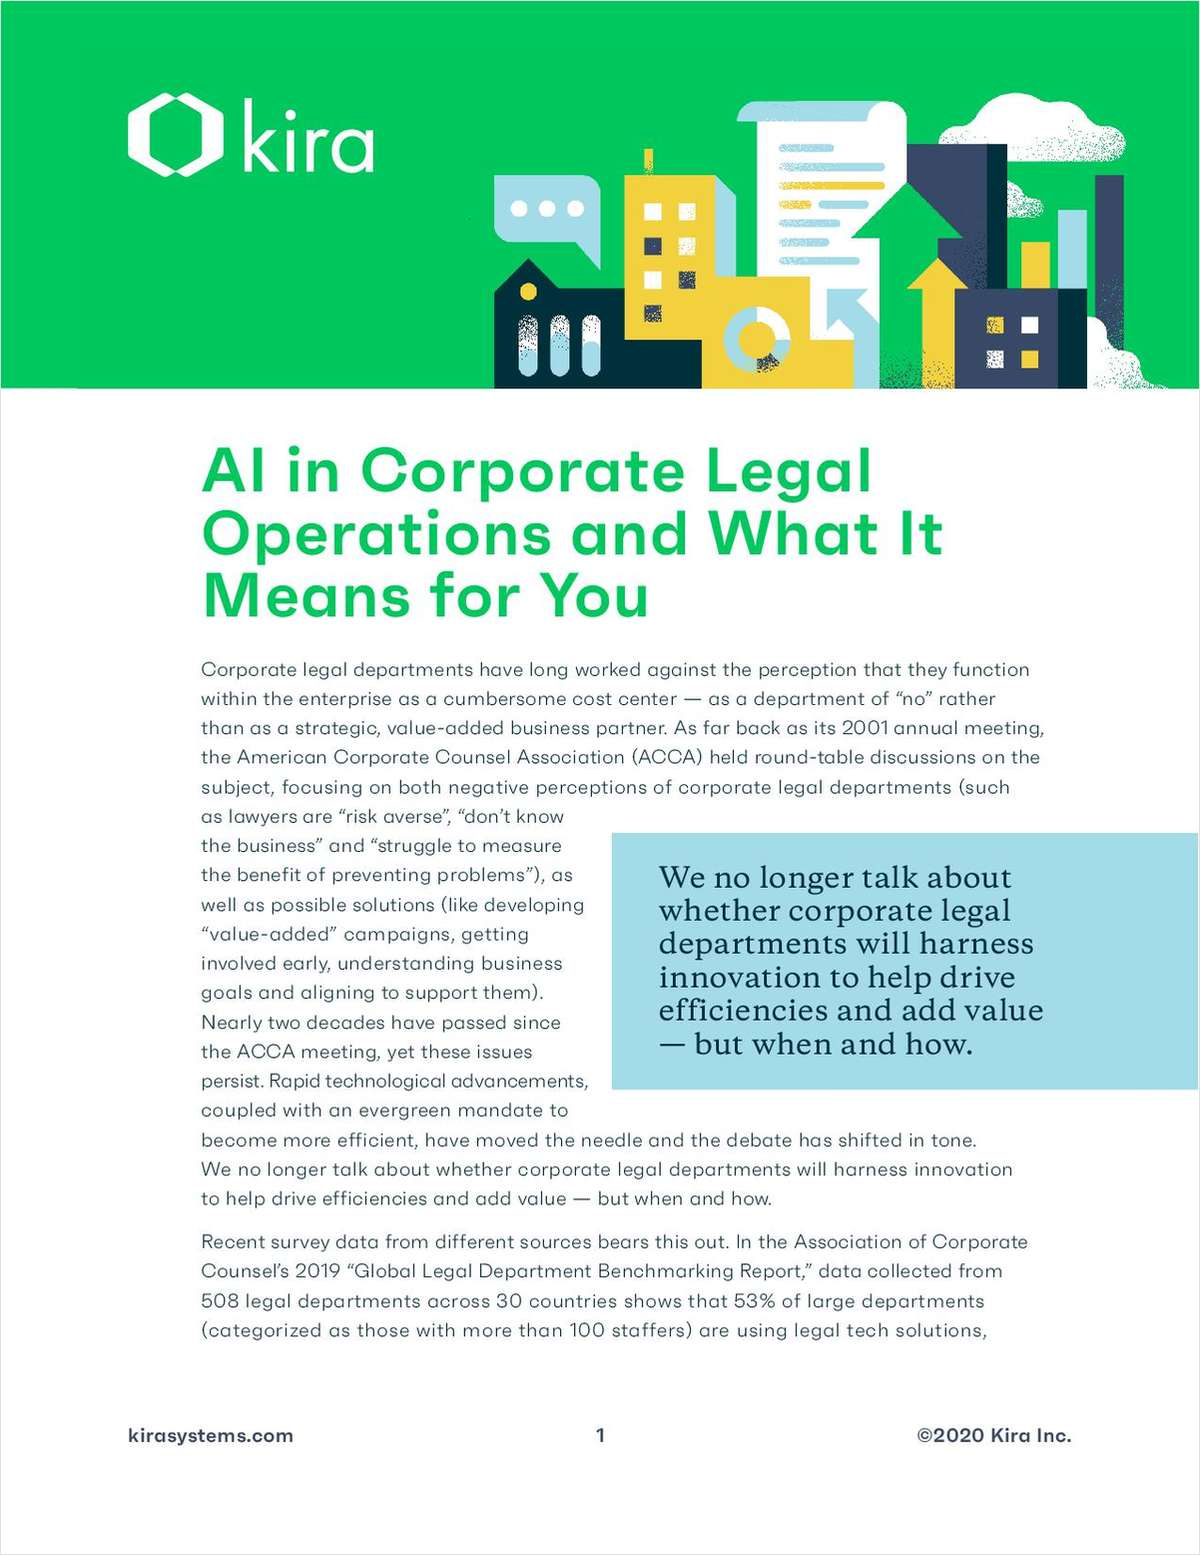 AI in Corporate Legal Operations and What It Means for You